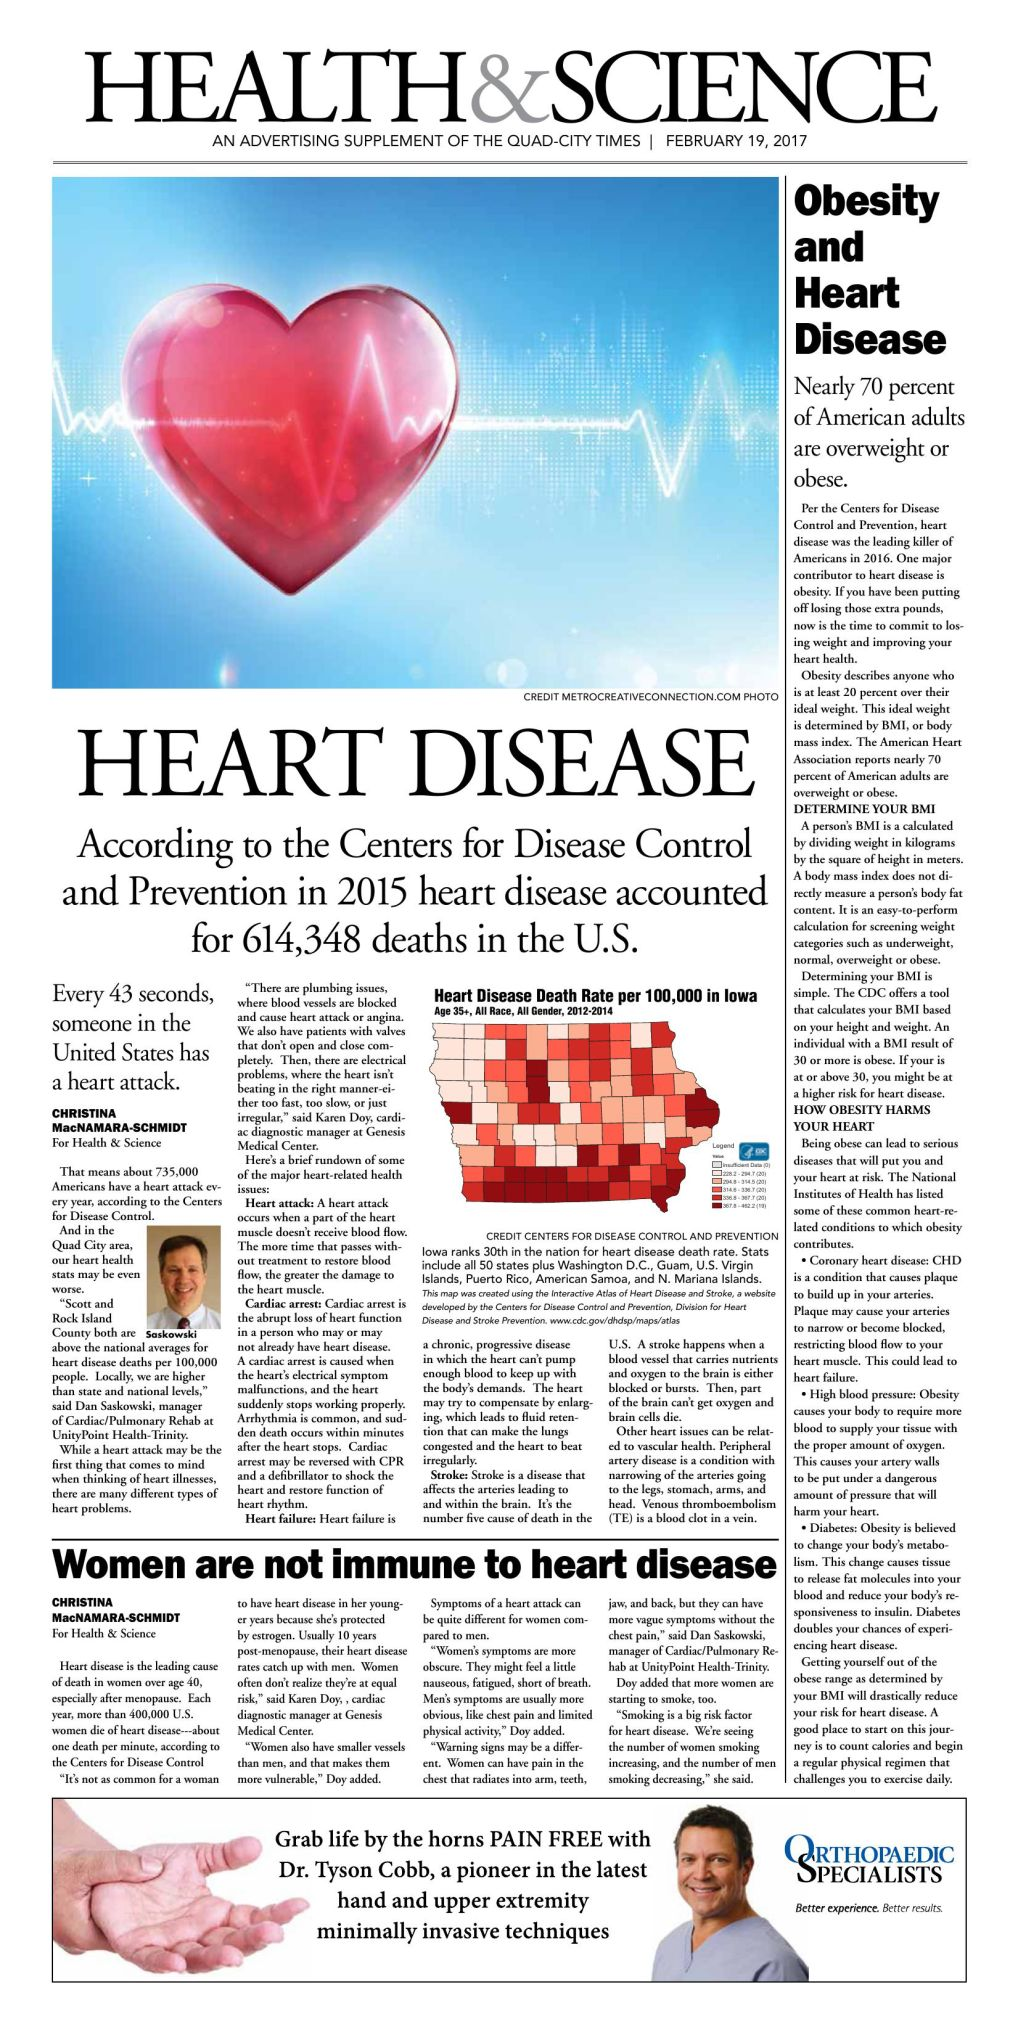 Health & Science Advertising Supplement 2-19-17